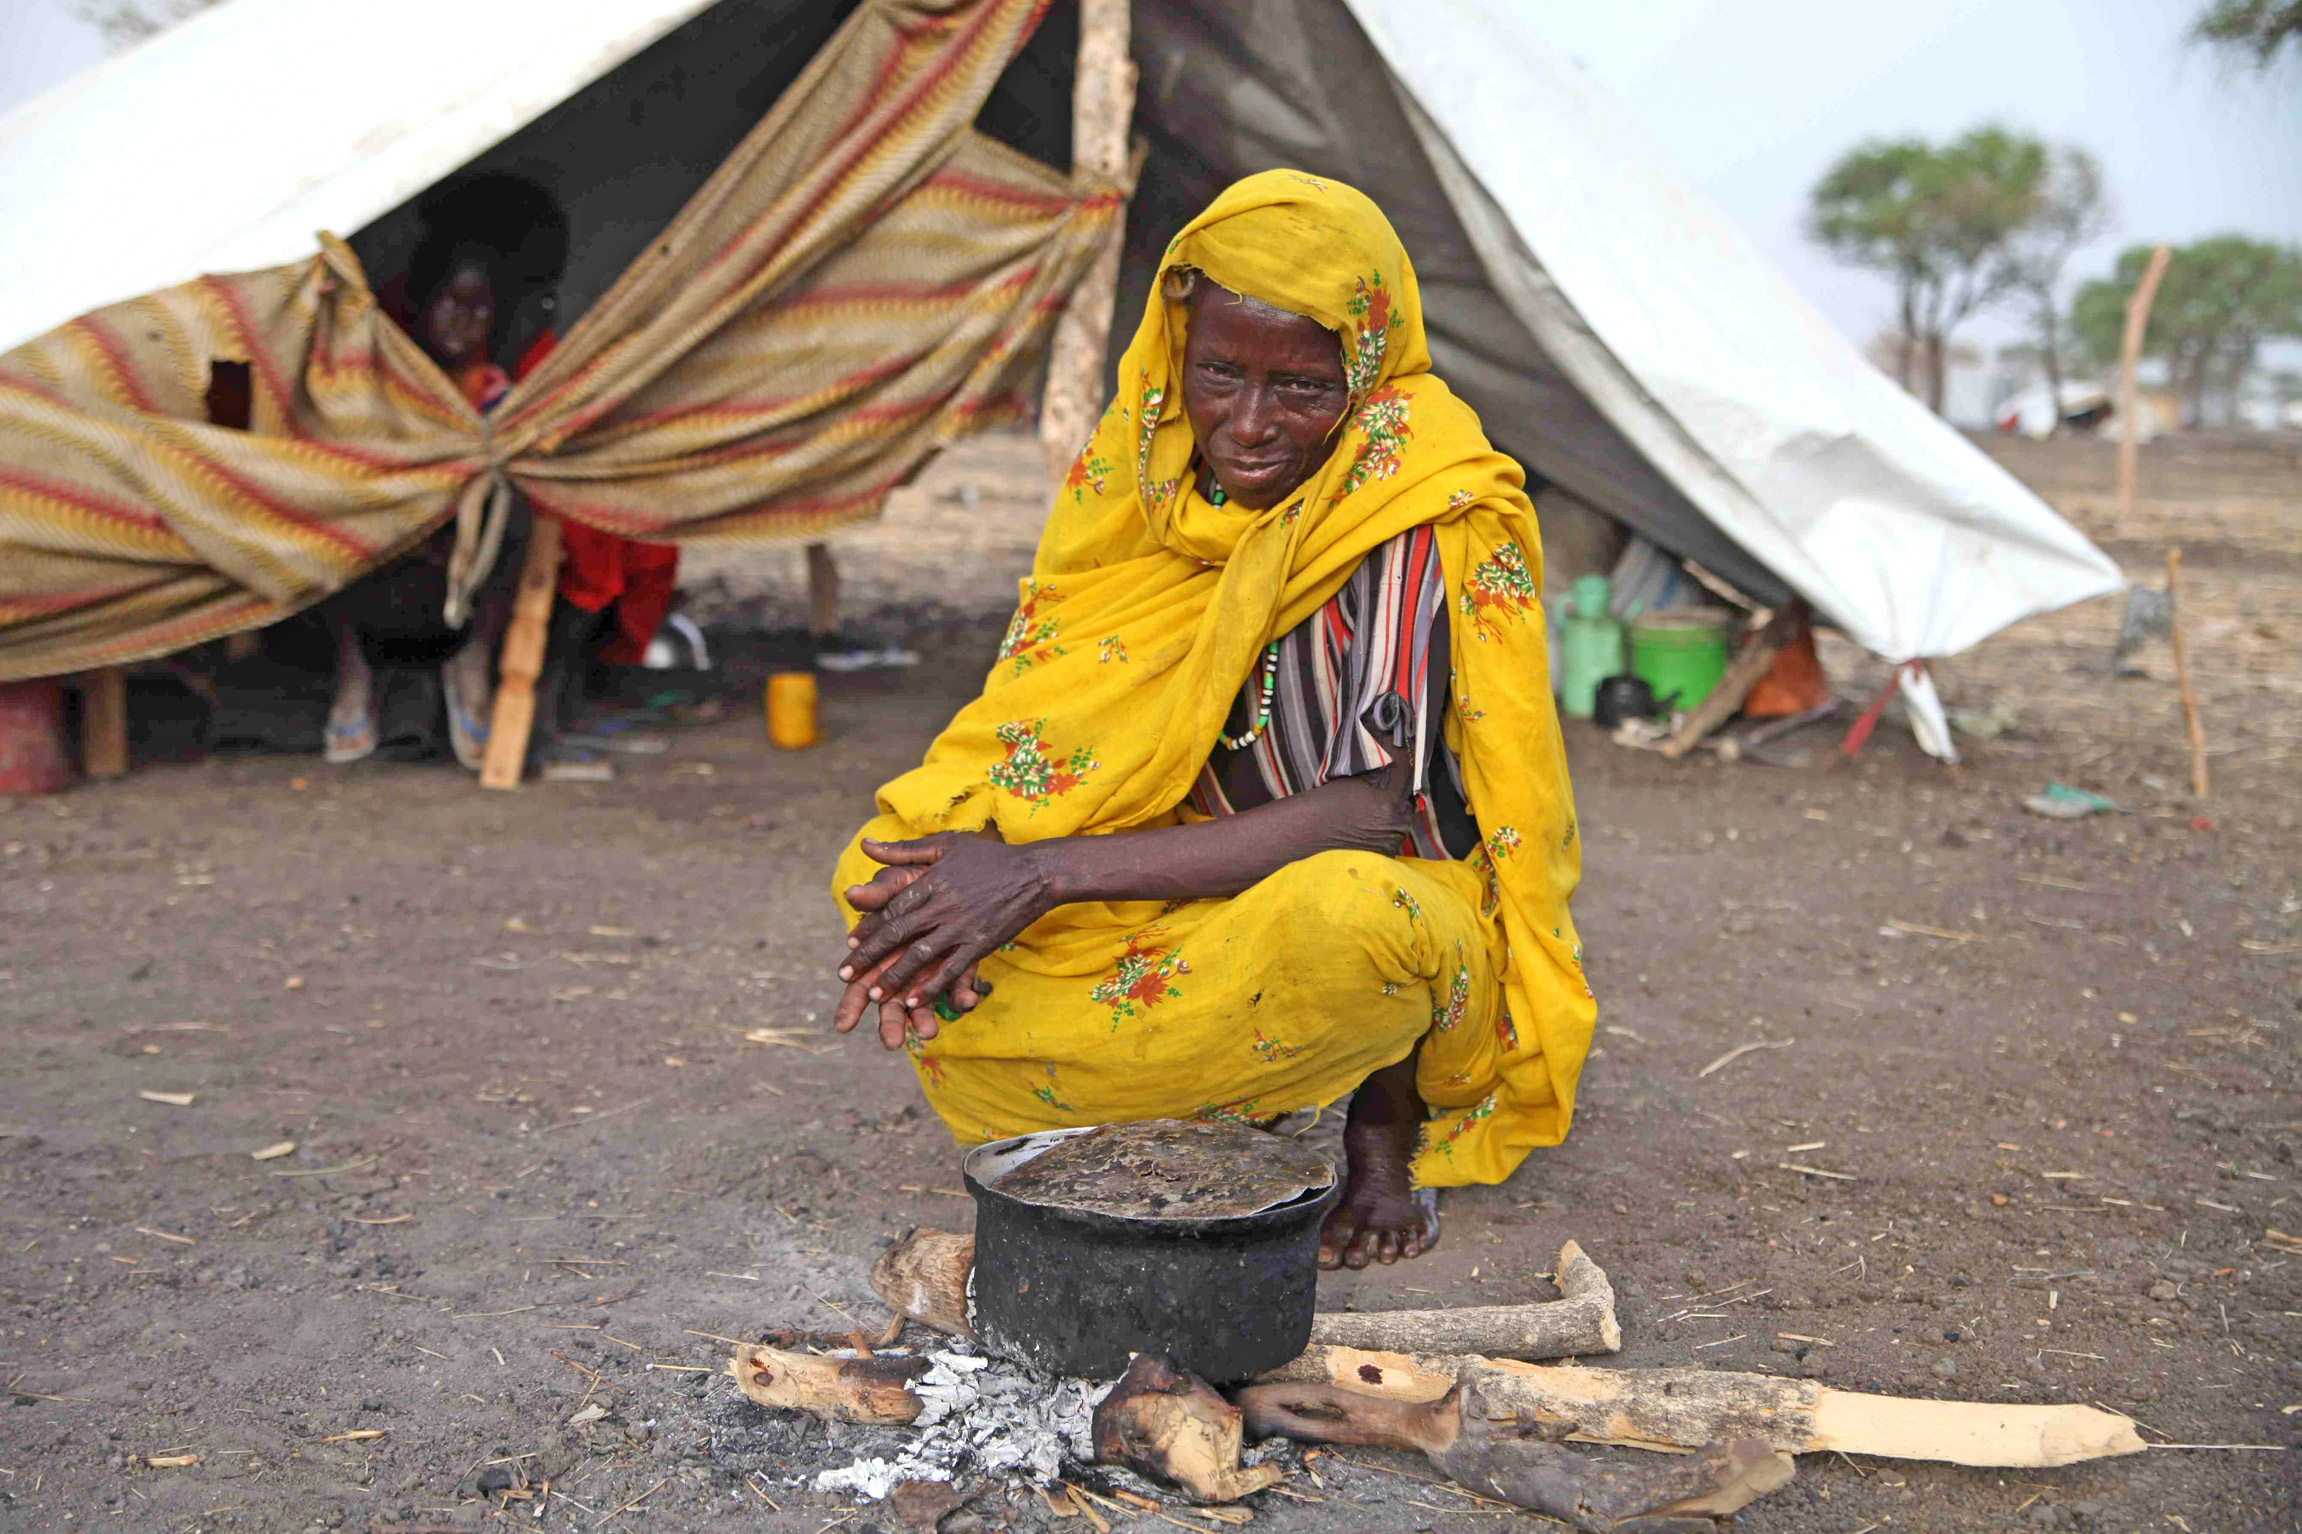 Refugee at Jamam camp, South Sudan